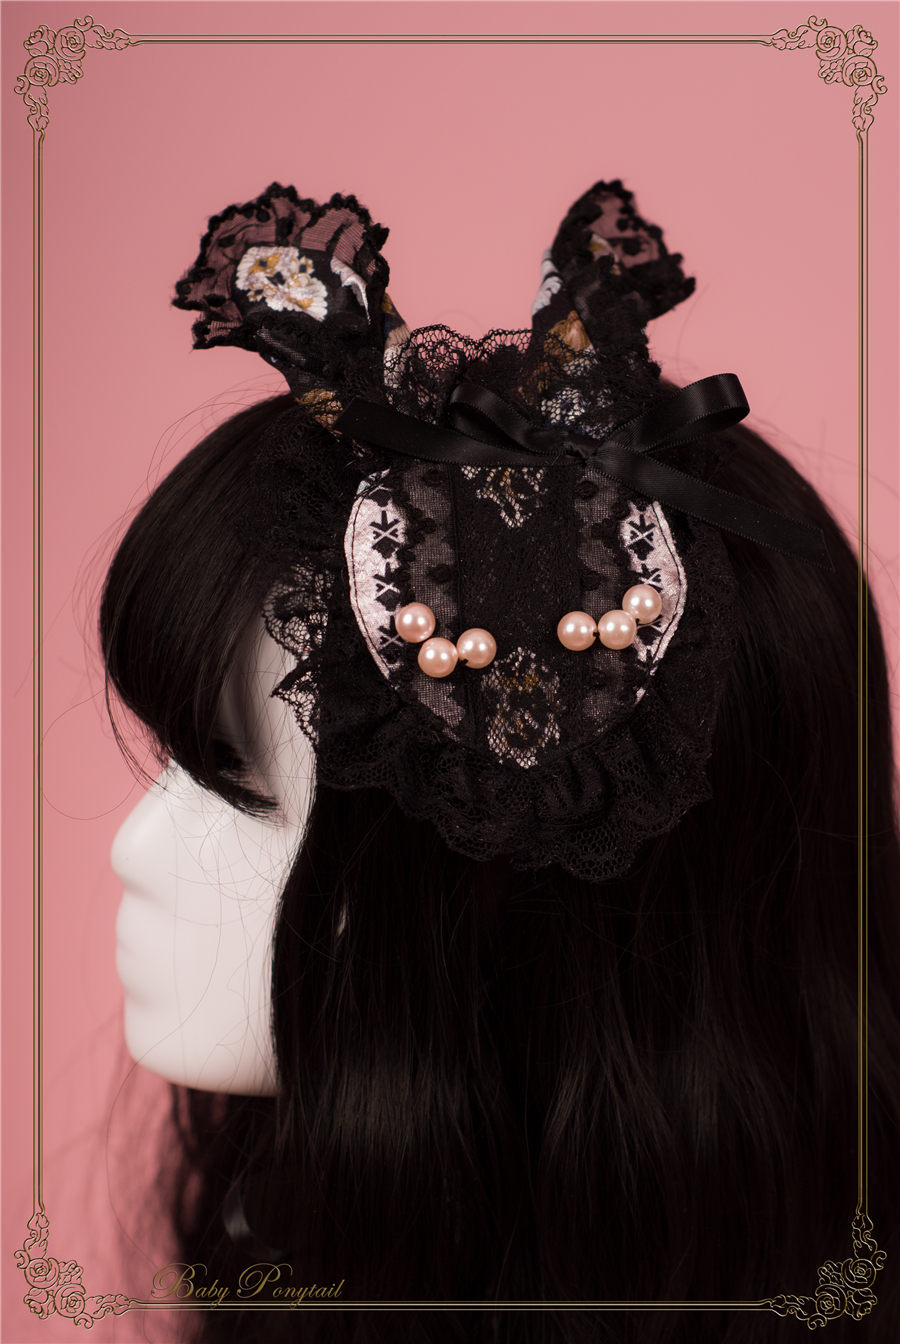 BabyPonytail_Stock Photo_My Favorite Companion_Bunny Head Dress_5.jpg